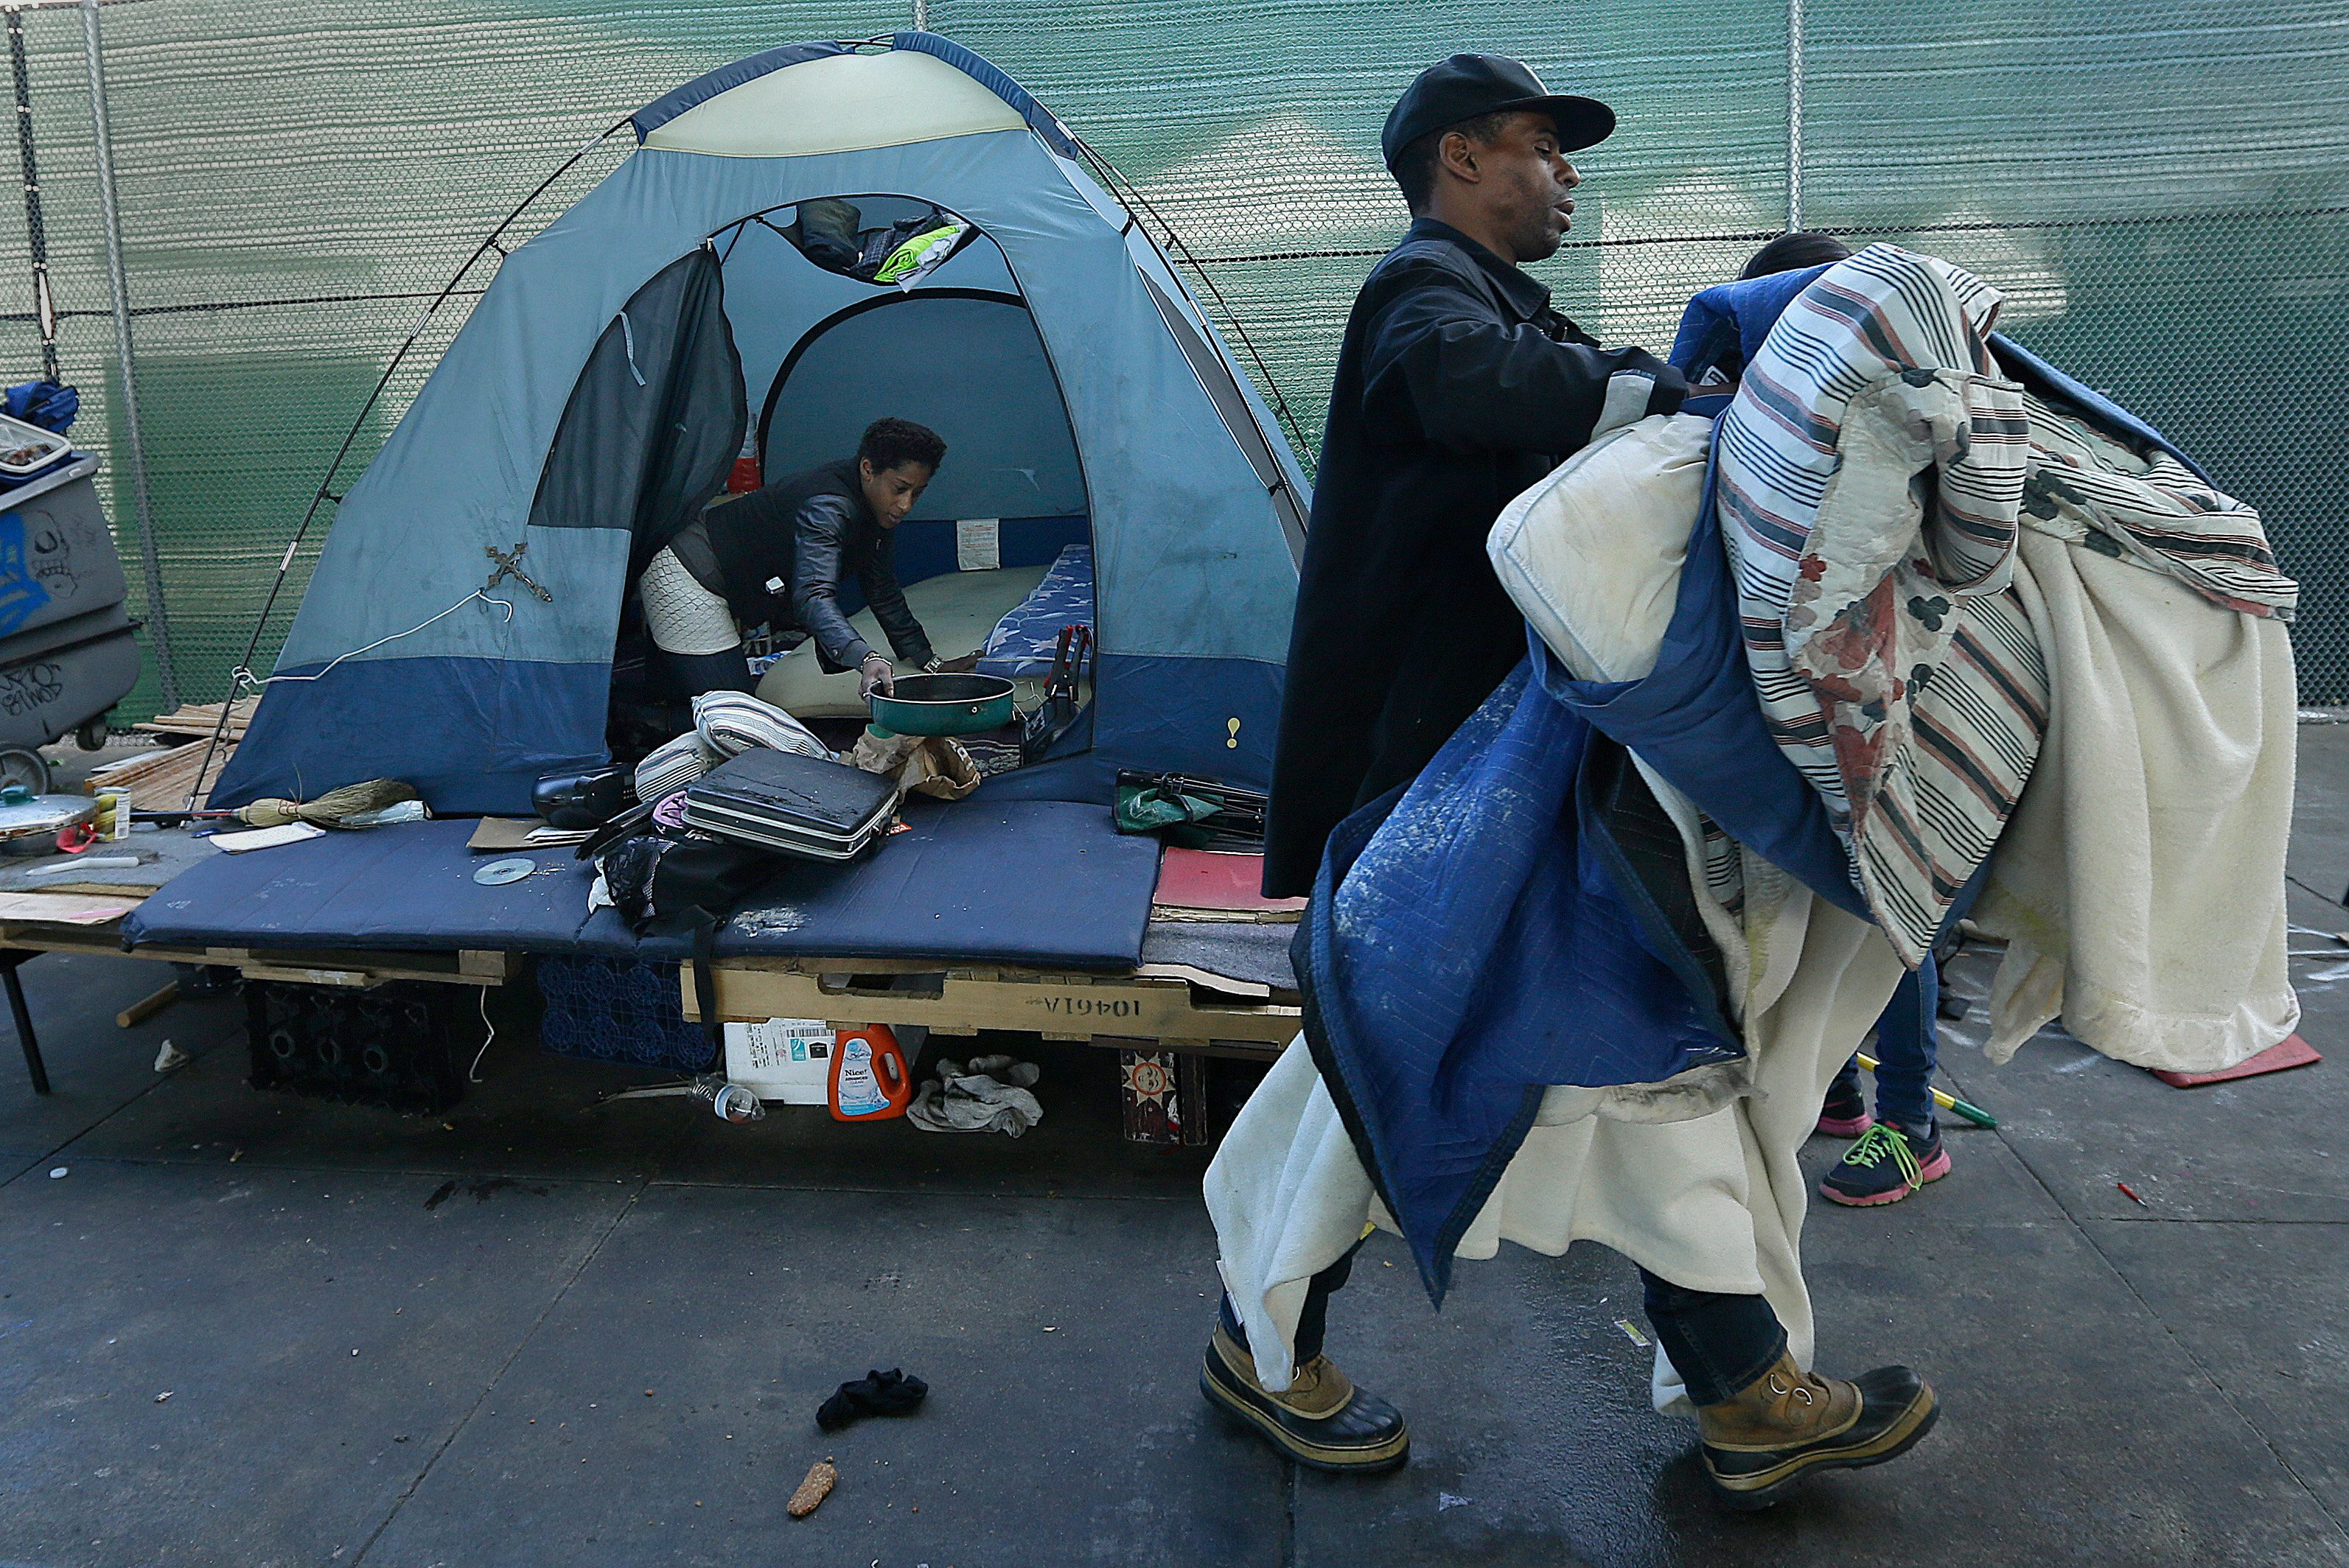 A homeless couple gather their belongings in San Francisco, Tuesday, March 1, 2016. Crews in San Francisco on Tuesday began sweeping out a homeless camp under the city's Central Freeway that was declared a health hazard and for months has been a source of irritation for neighbors and nearby businesses. (AP Photo/Ben Margot)